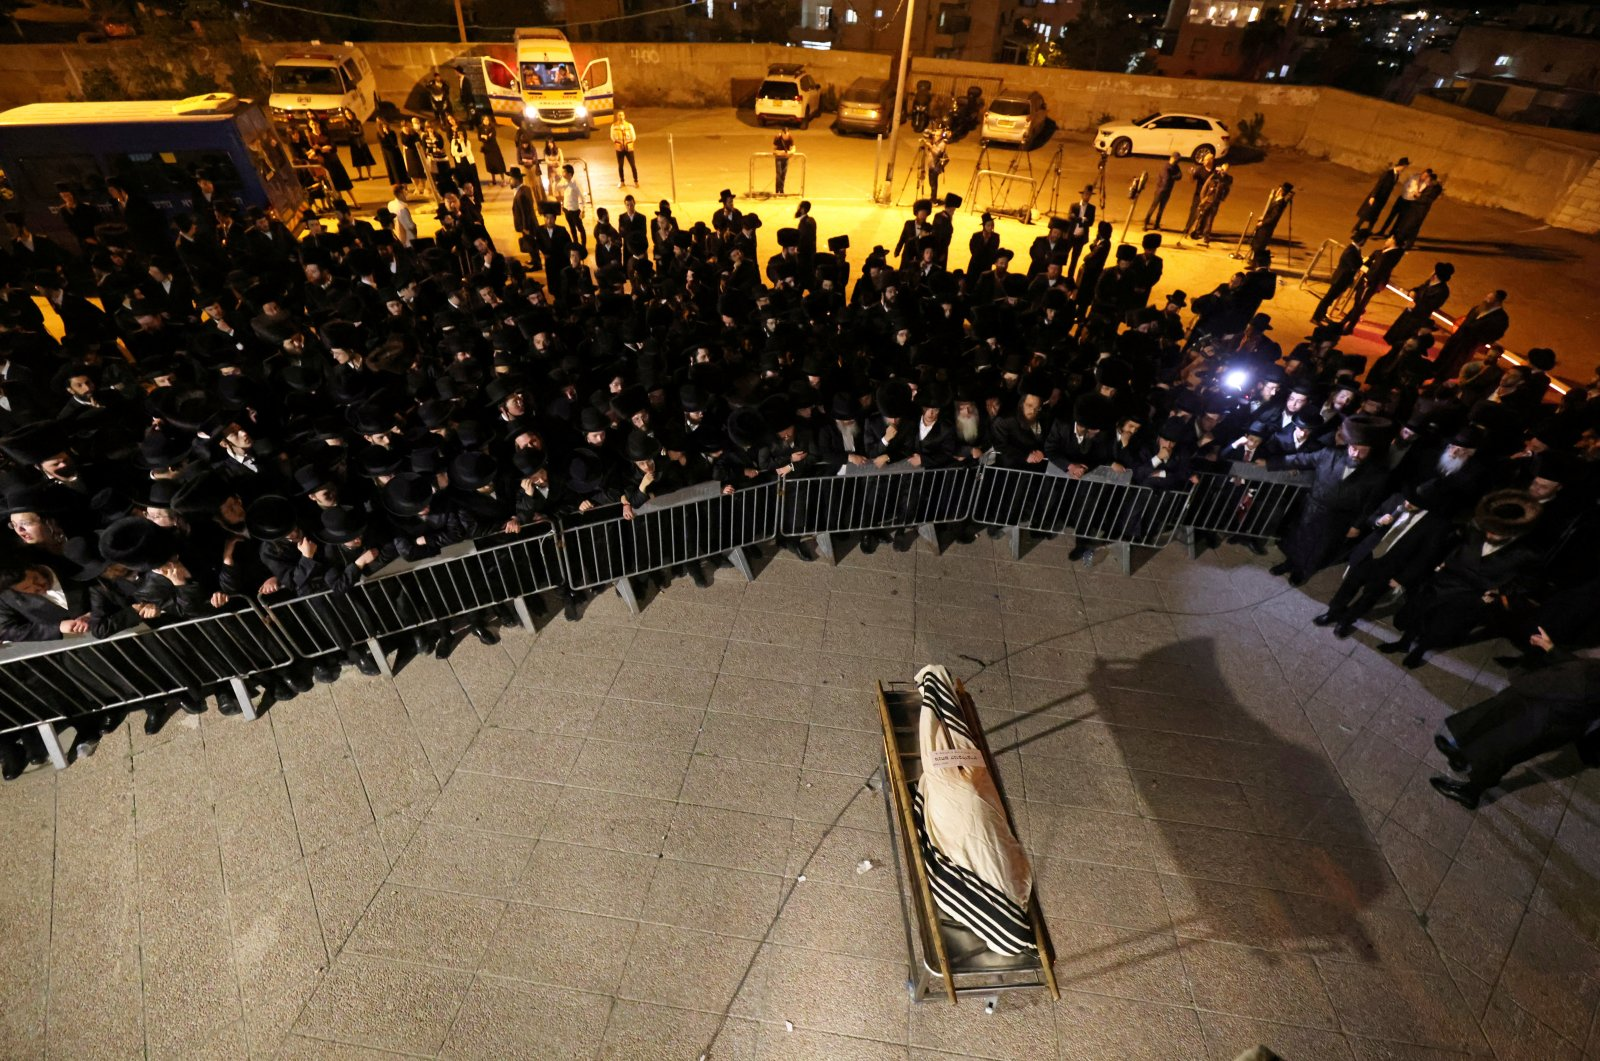 The body of Menahem Kanovlowitz, who died in a stampede at an ultra-Orthodox Jewish festival on the slopes of Israel's Mount Meron, is surrounded by mourners during his funeral in Jerusalem, May 1, 2021. (Reuters Photo)